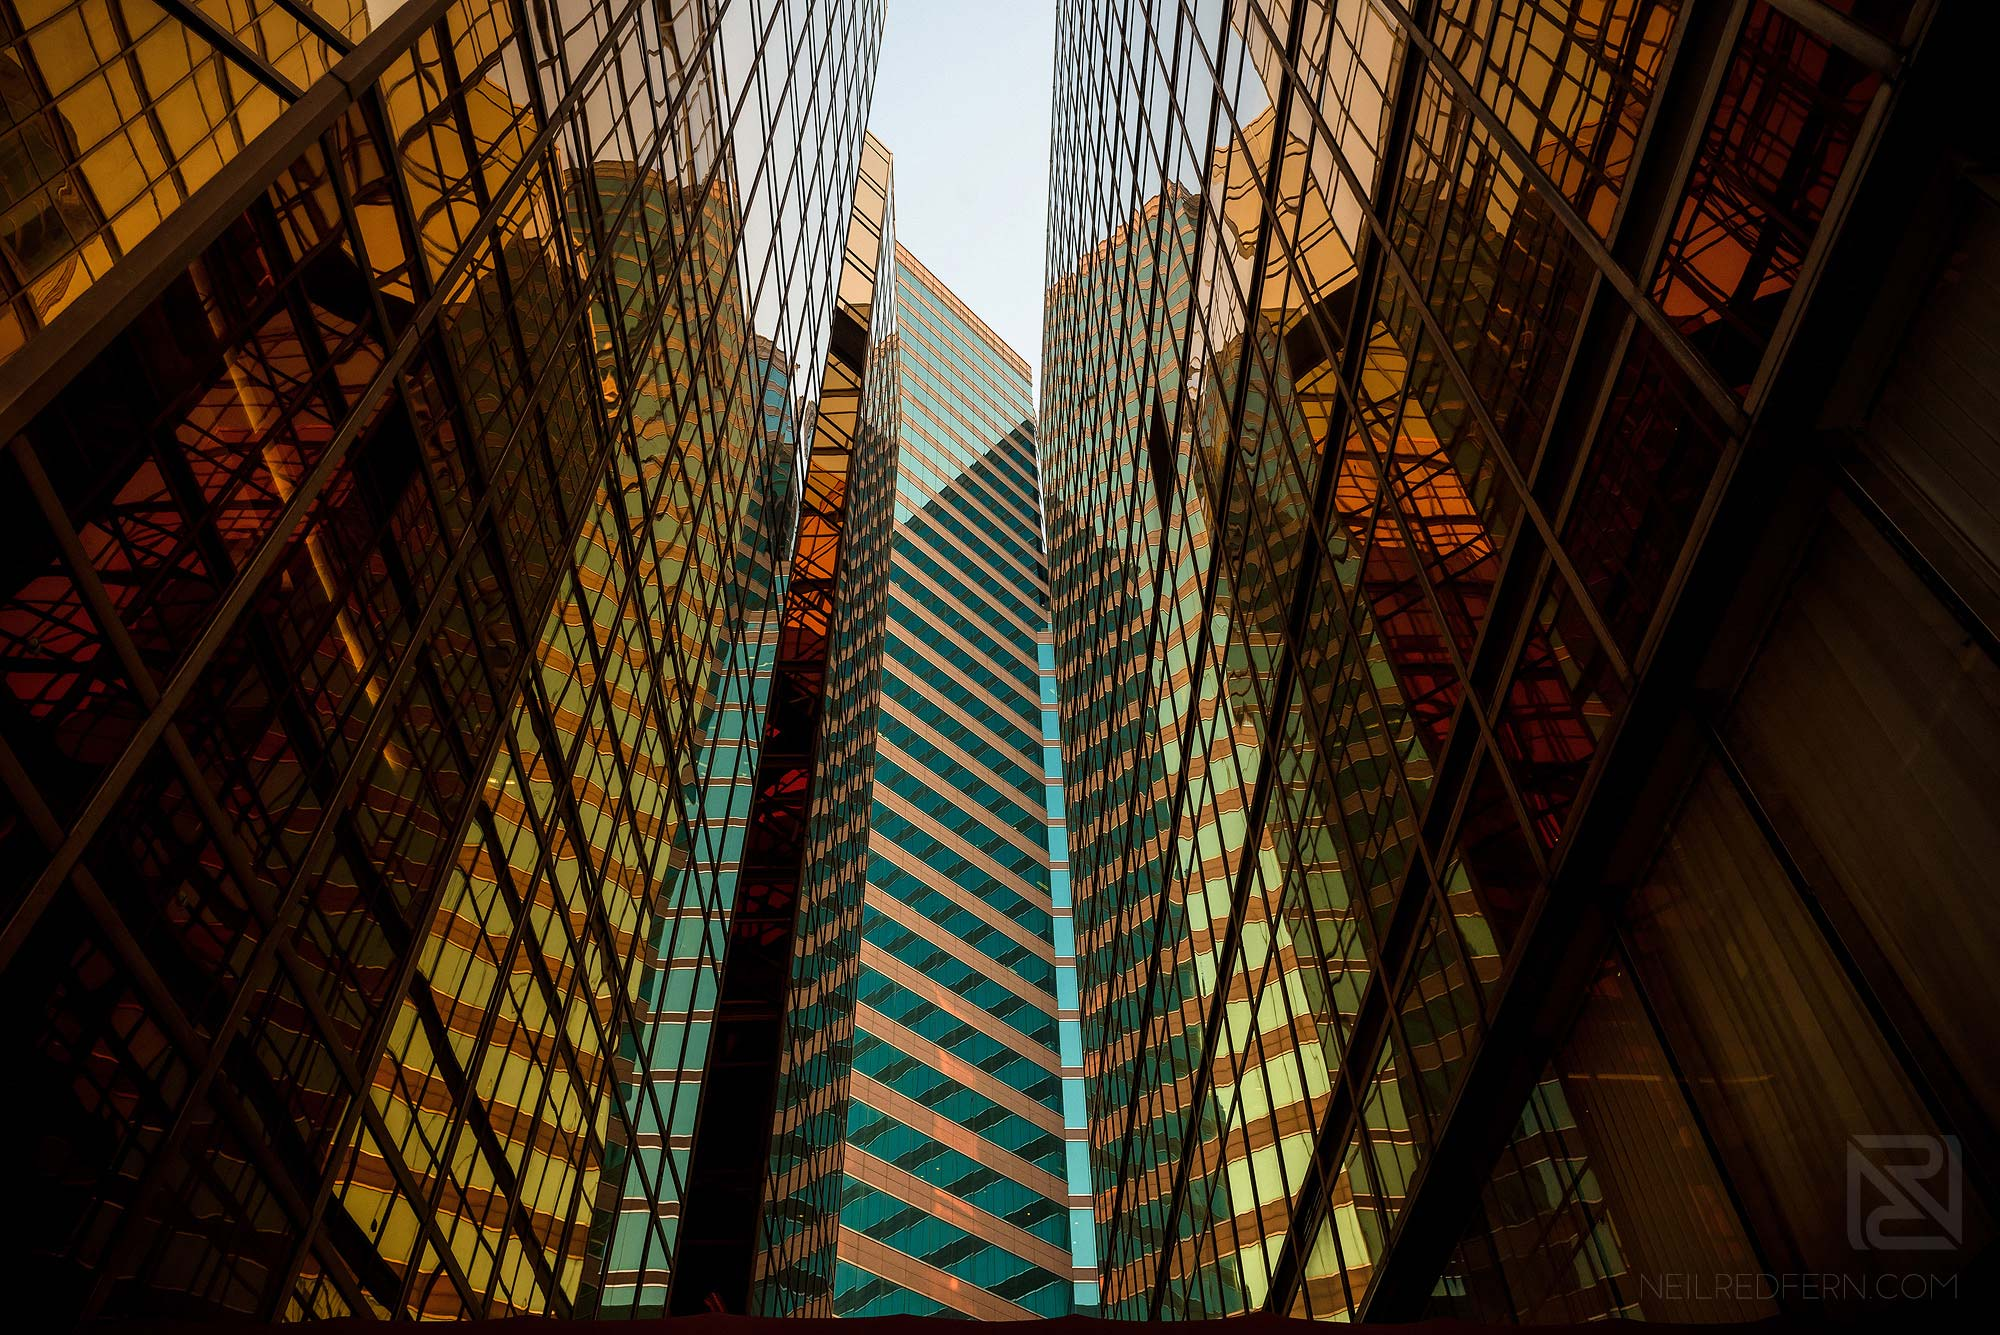 wide photograph of office buildings in China Hong Kong city